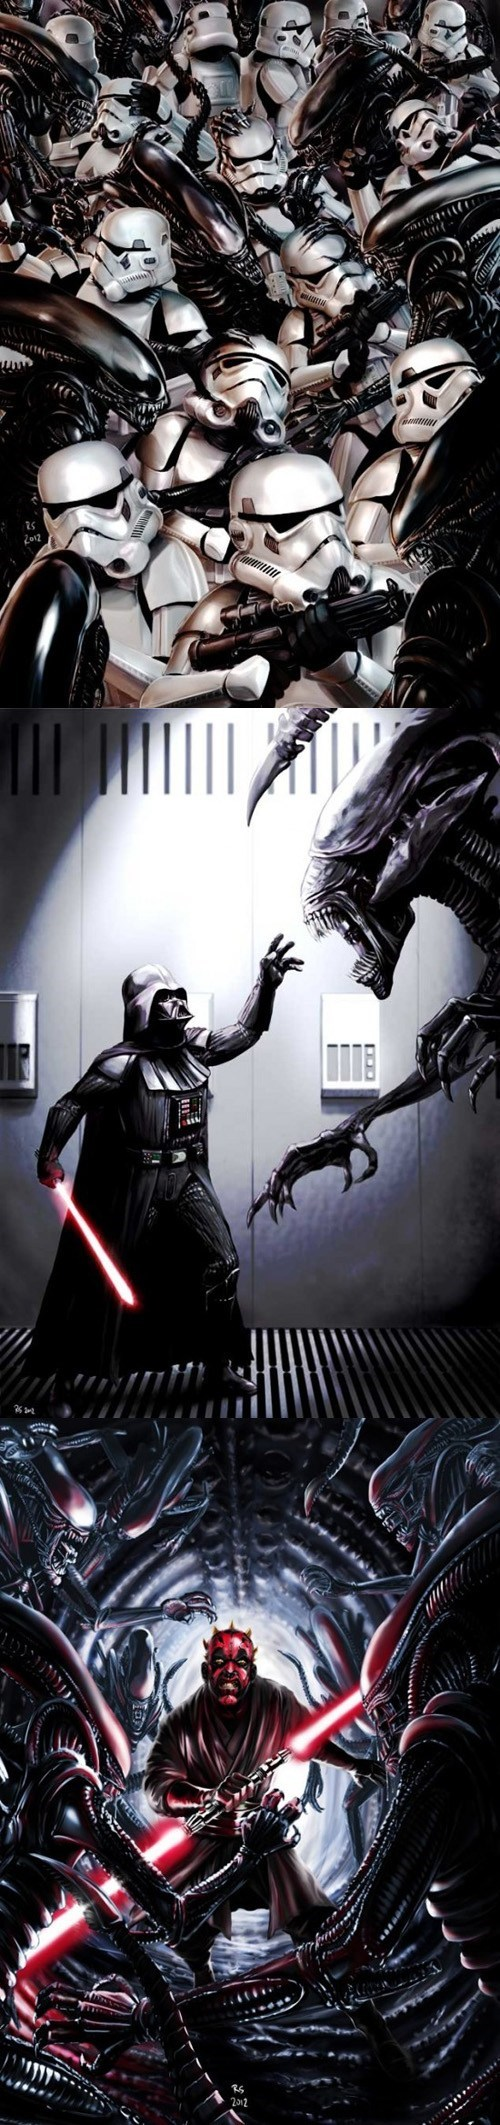 darth maul Aliens star wars alien queen Fan Art stormtrooper darth vader xenomorphs - 6940878336